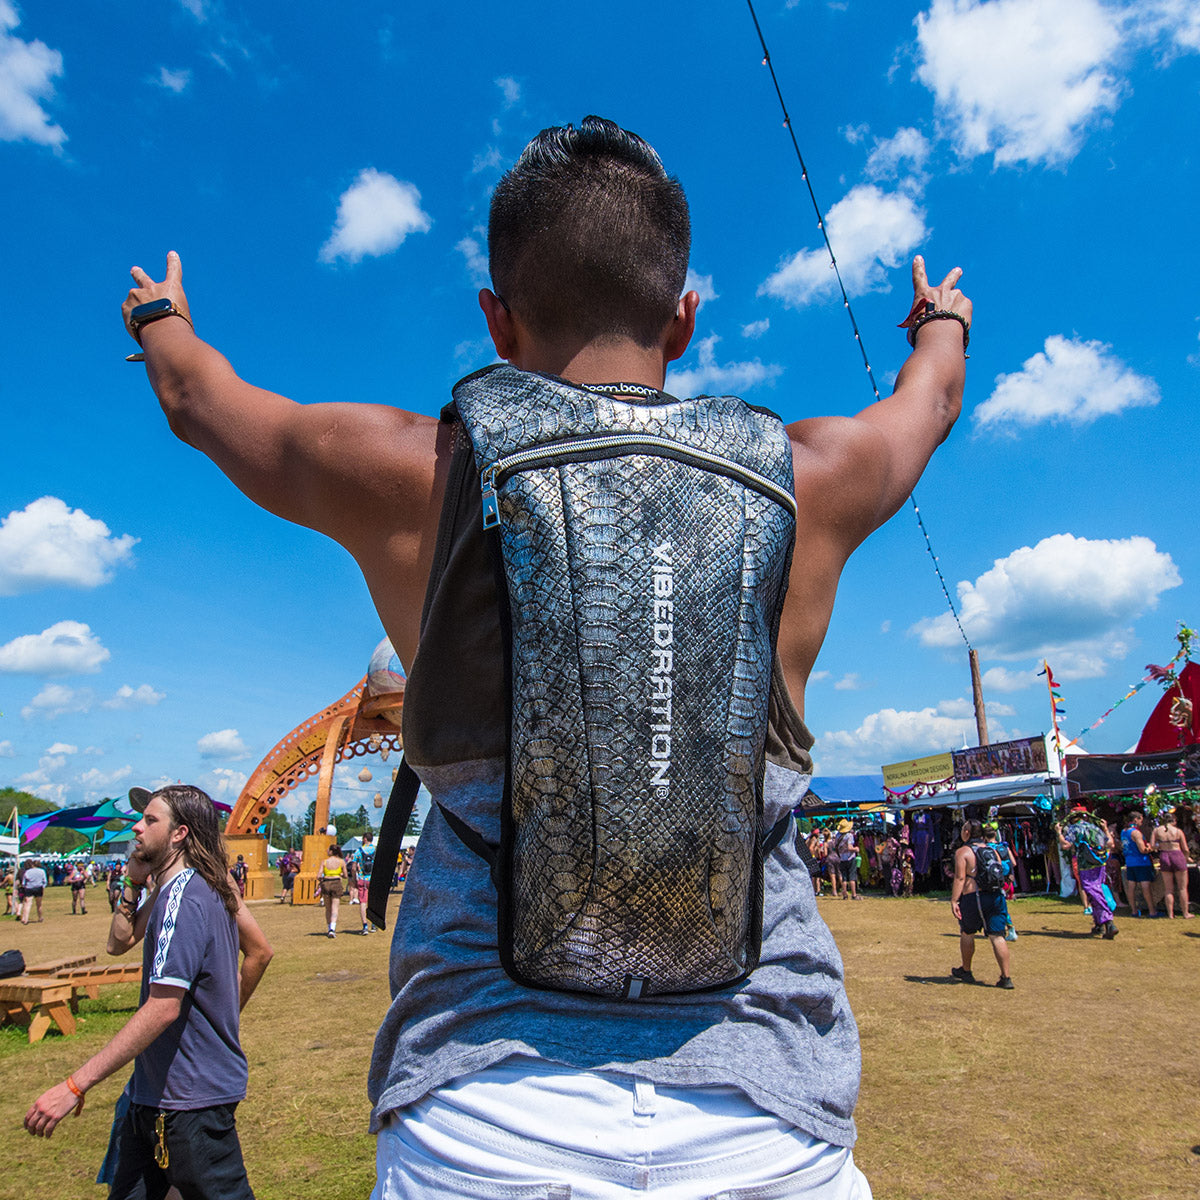 Black Hydration Pack perfect for Burning Man